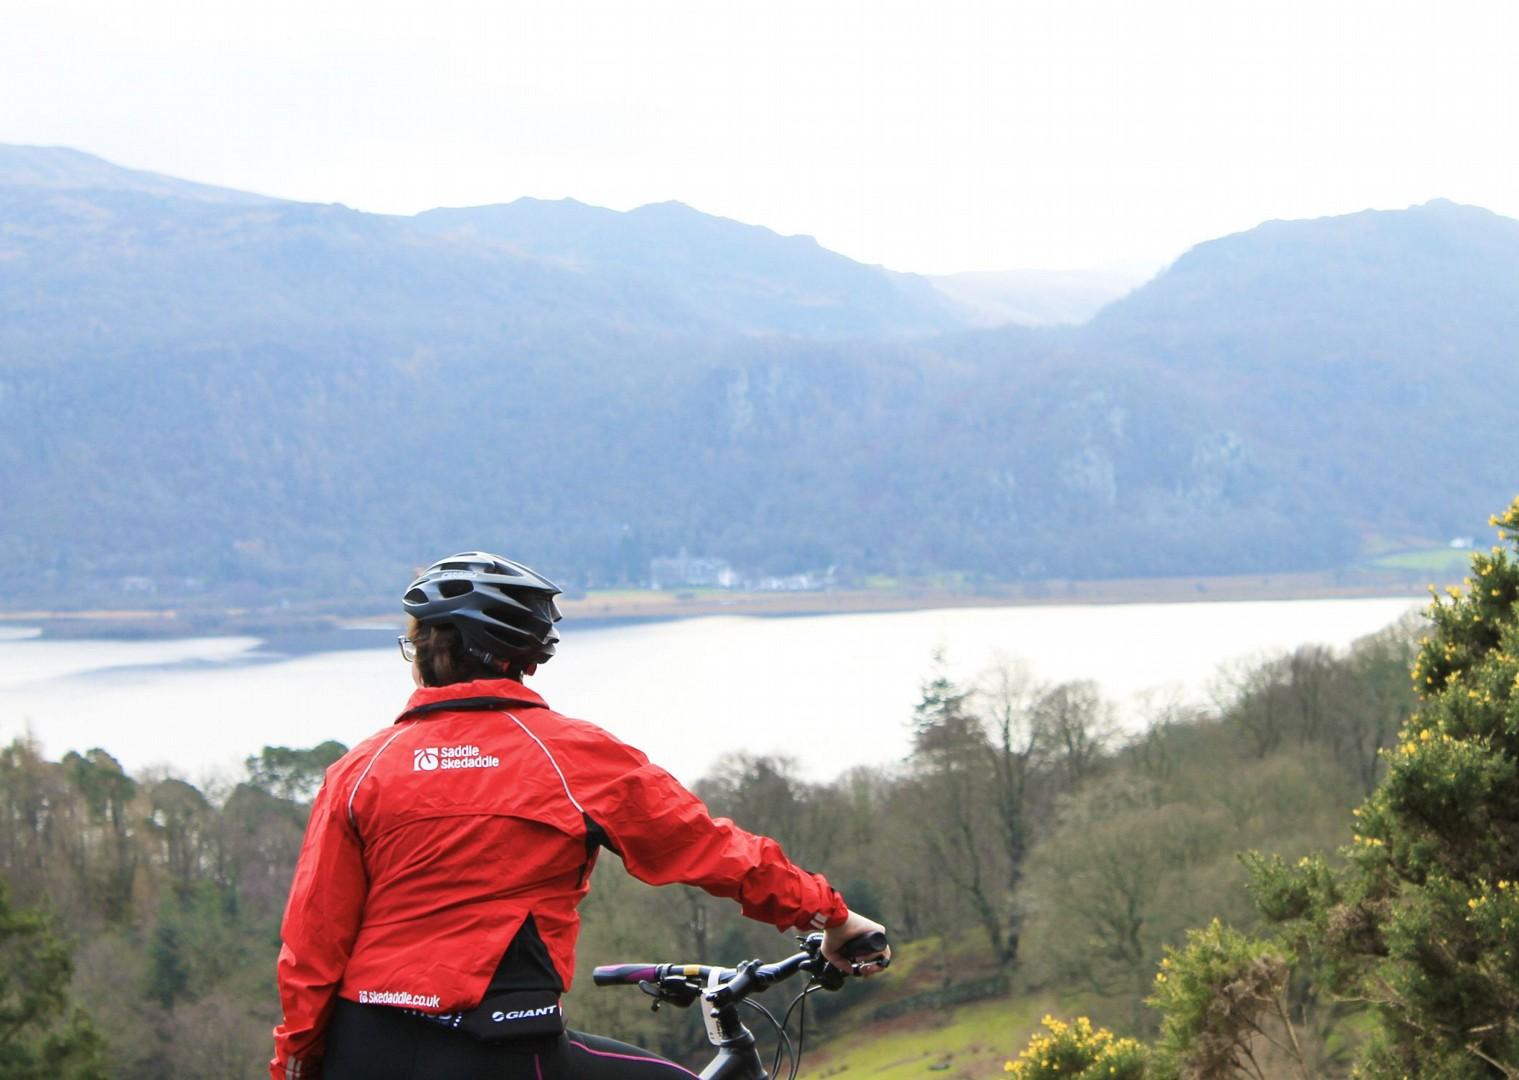 Lake District-Derwent-Water-Self-Guided-Leisure-Cycling-Holiday-2.jpg - UK - Lake District - Derwent Water - Self-Guided Leisure Cycling Holiday - Leisure Cycling